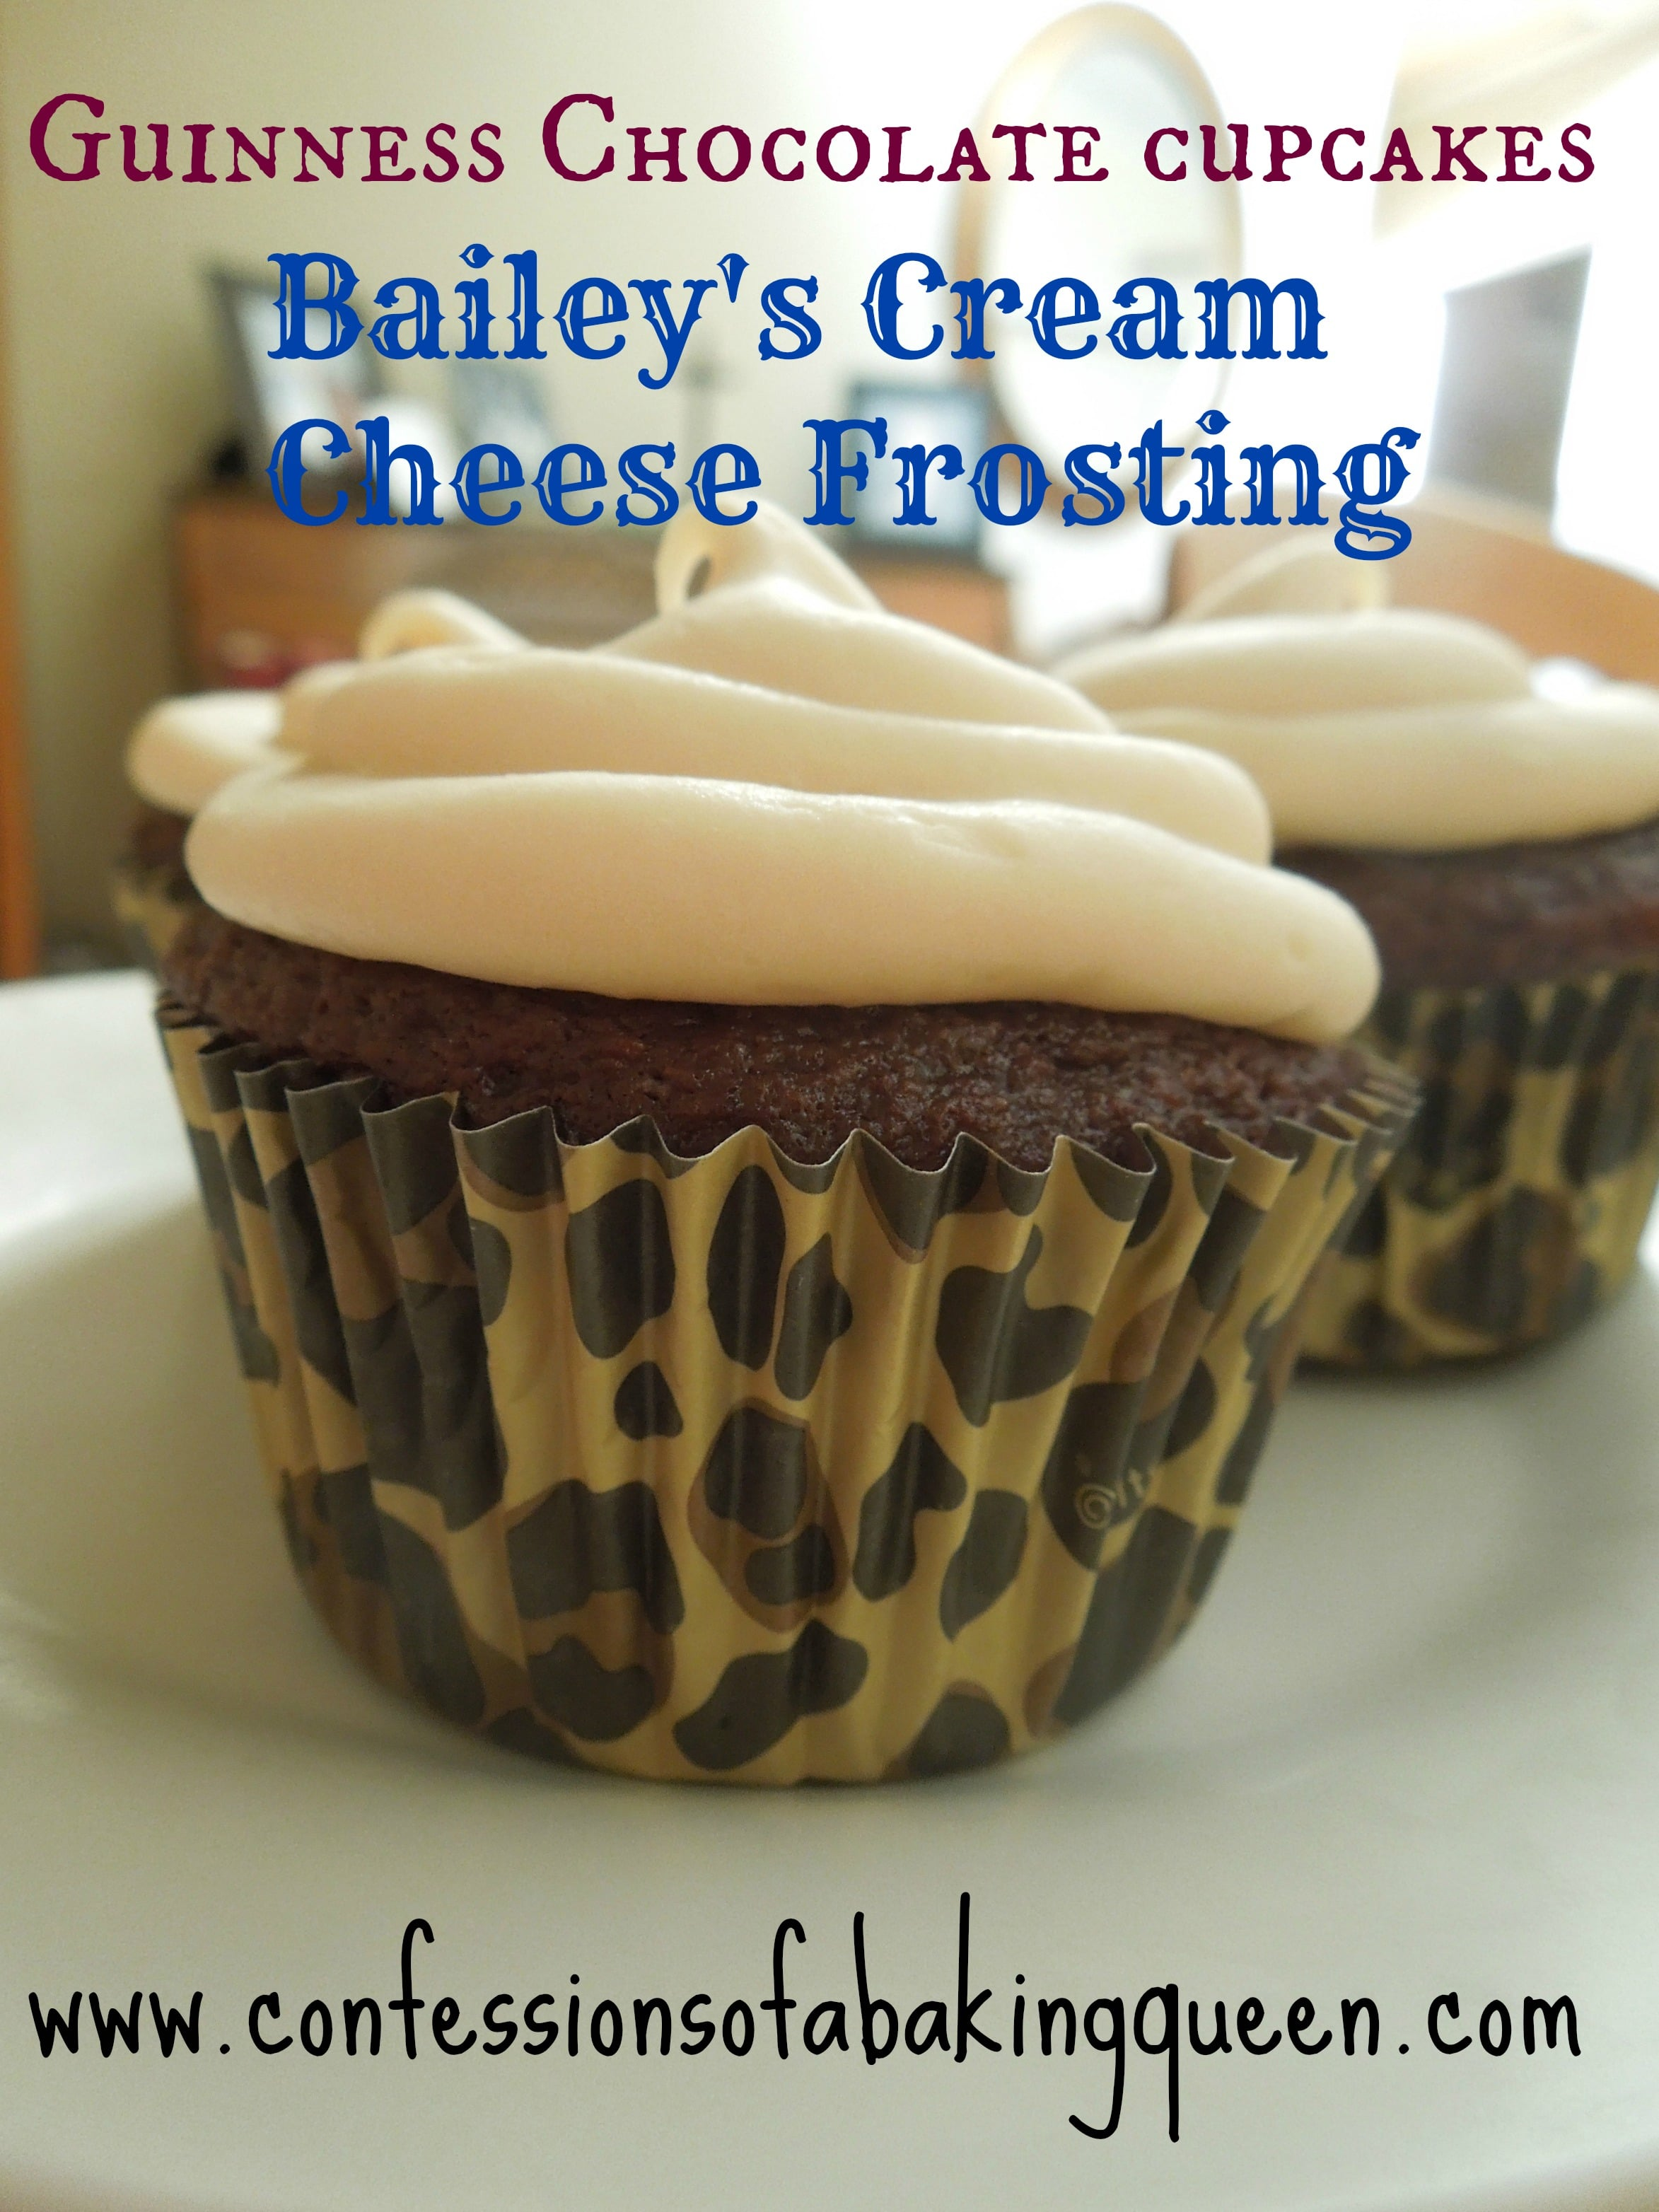 Chocolate Guinness Cupcakes www.confessionsofabakingqueen.com